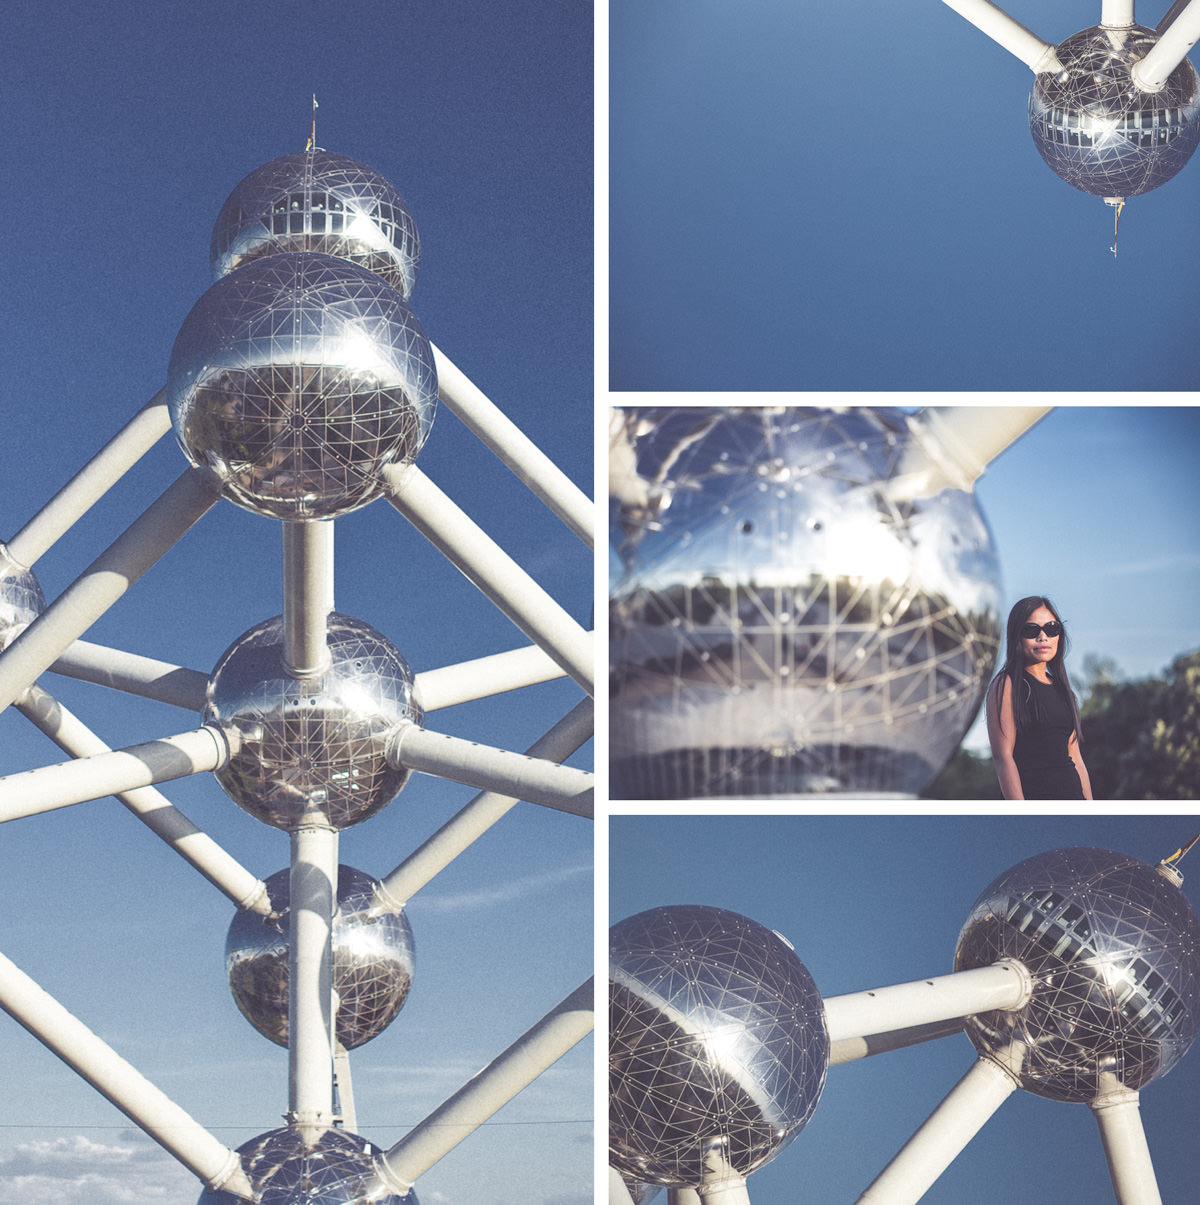 atomium in brussels - Belgium - creative photography